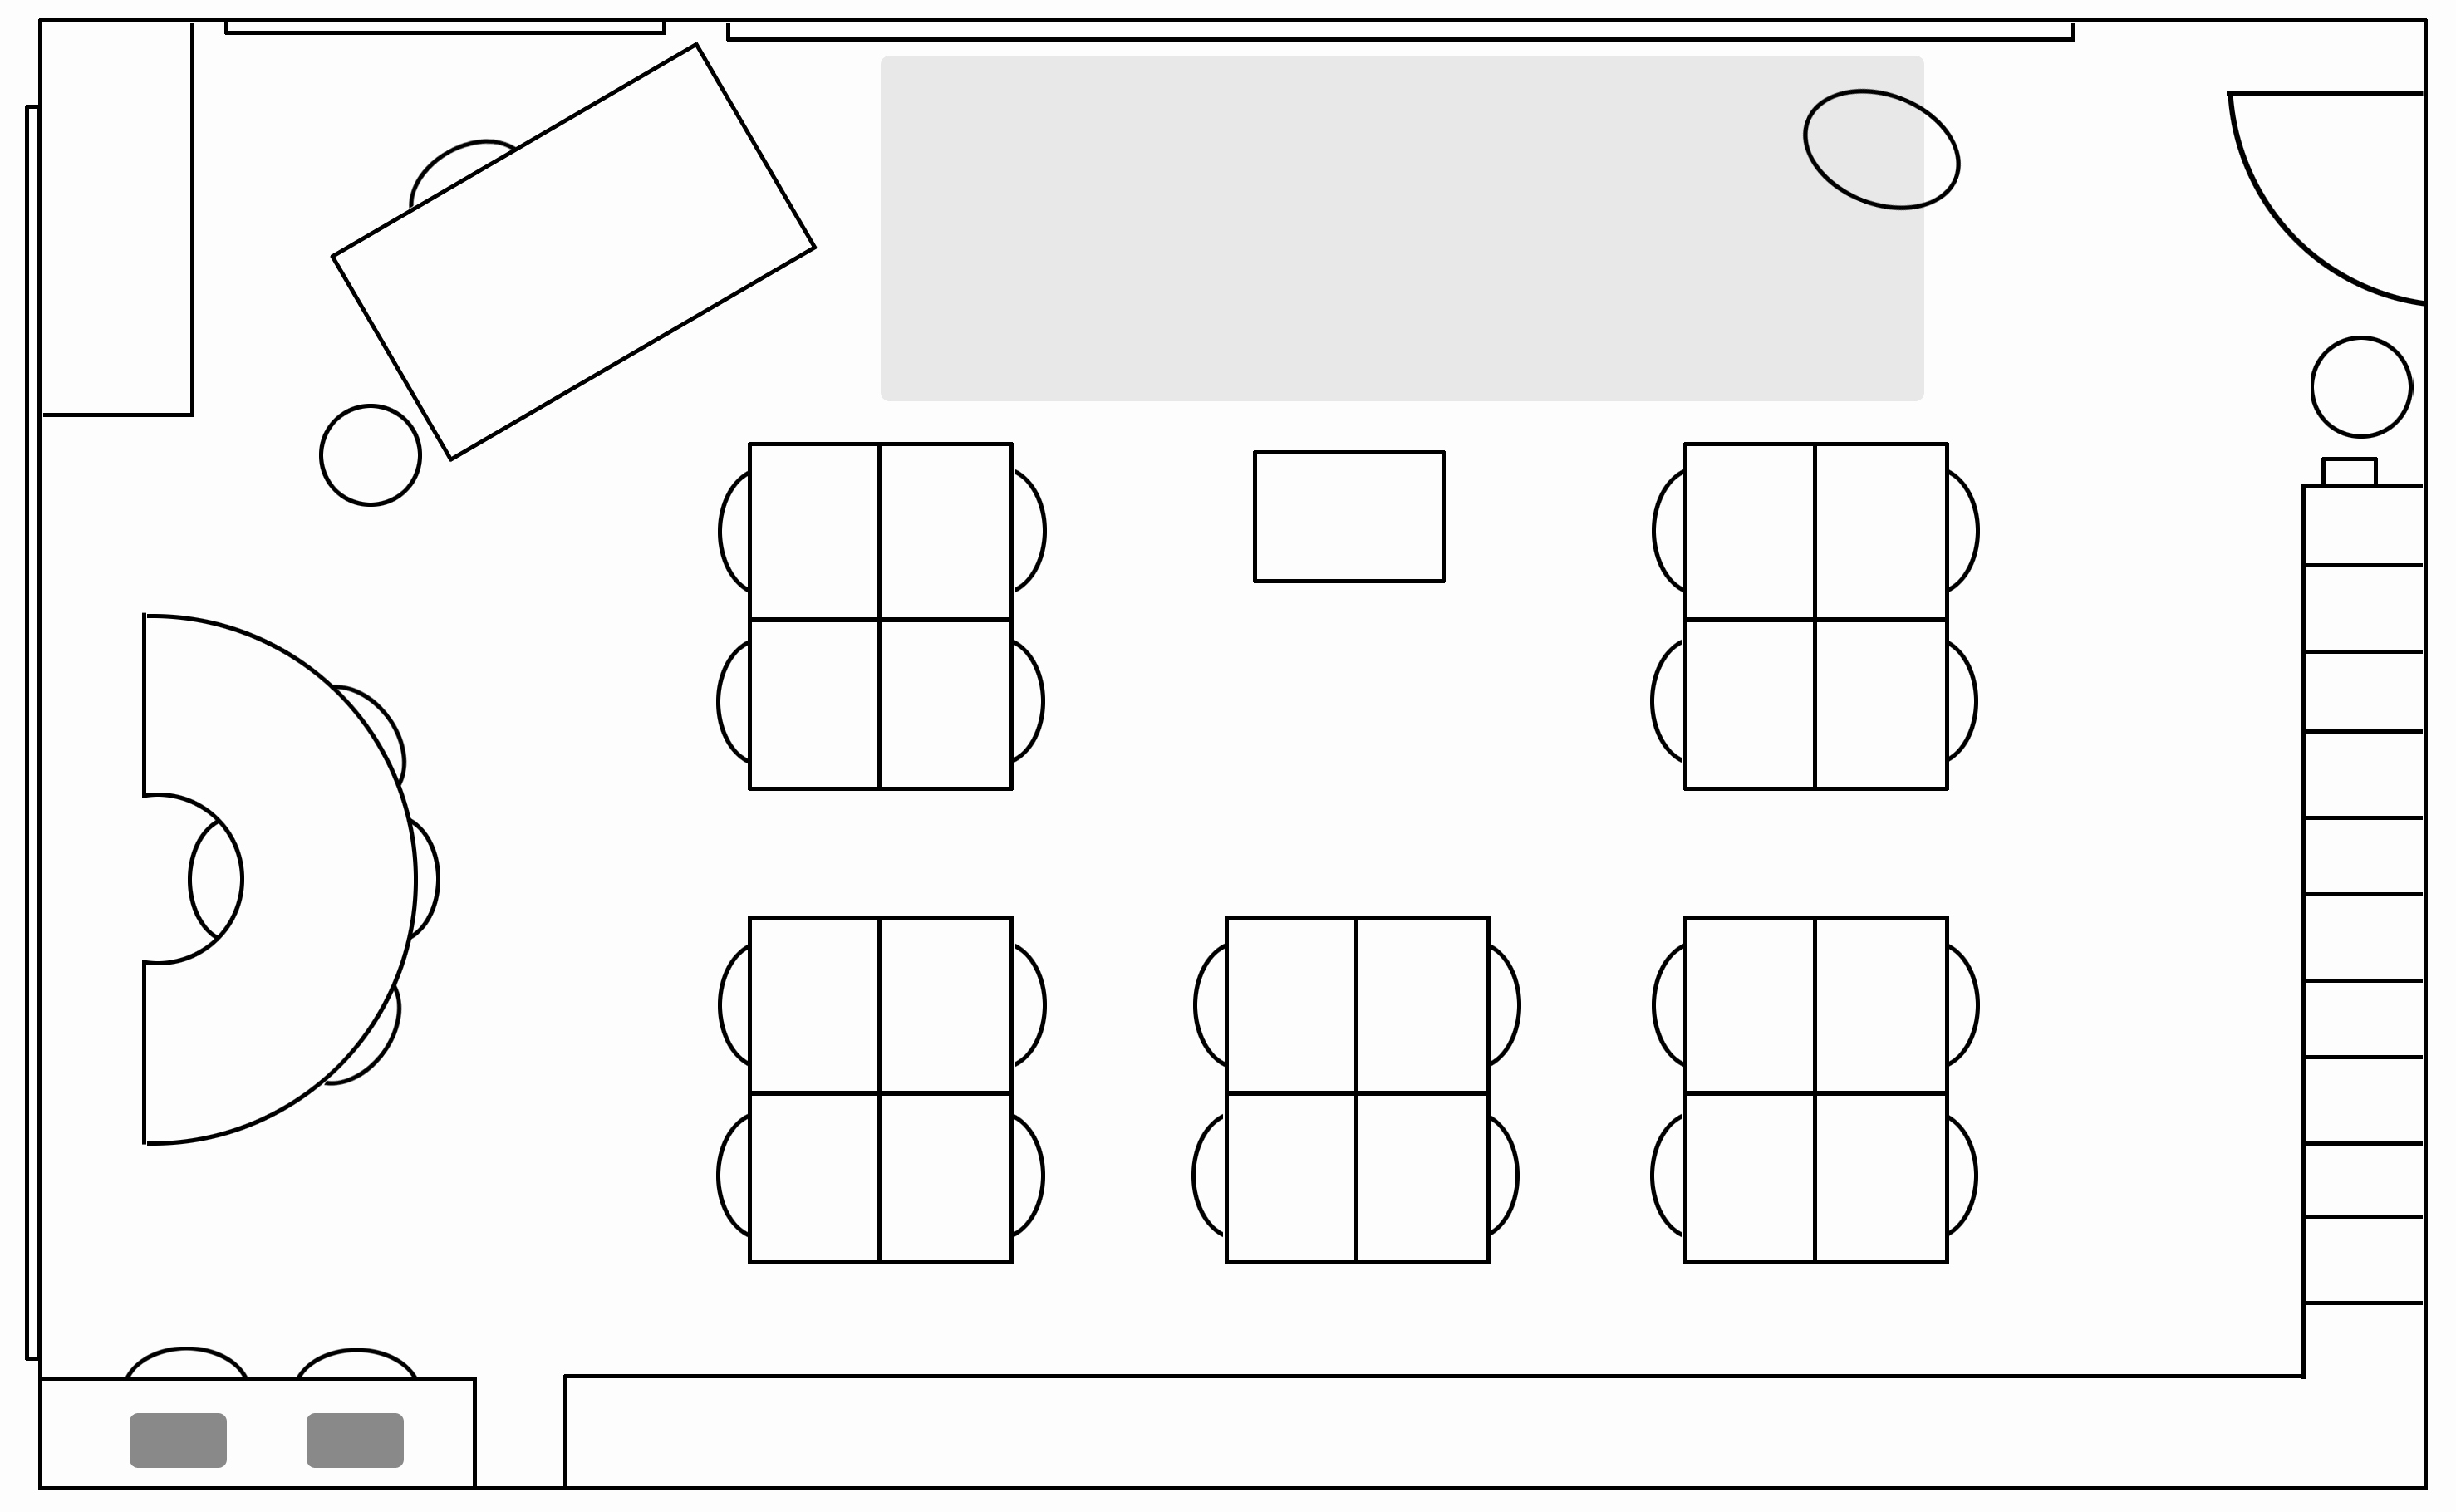 Make Seating Chart Online Free Luxury Free Classroom Seating Chart Maker Portablegasgrillweber